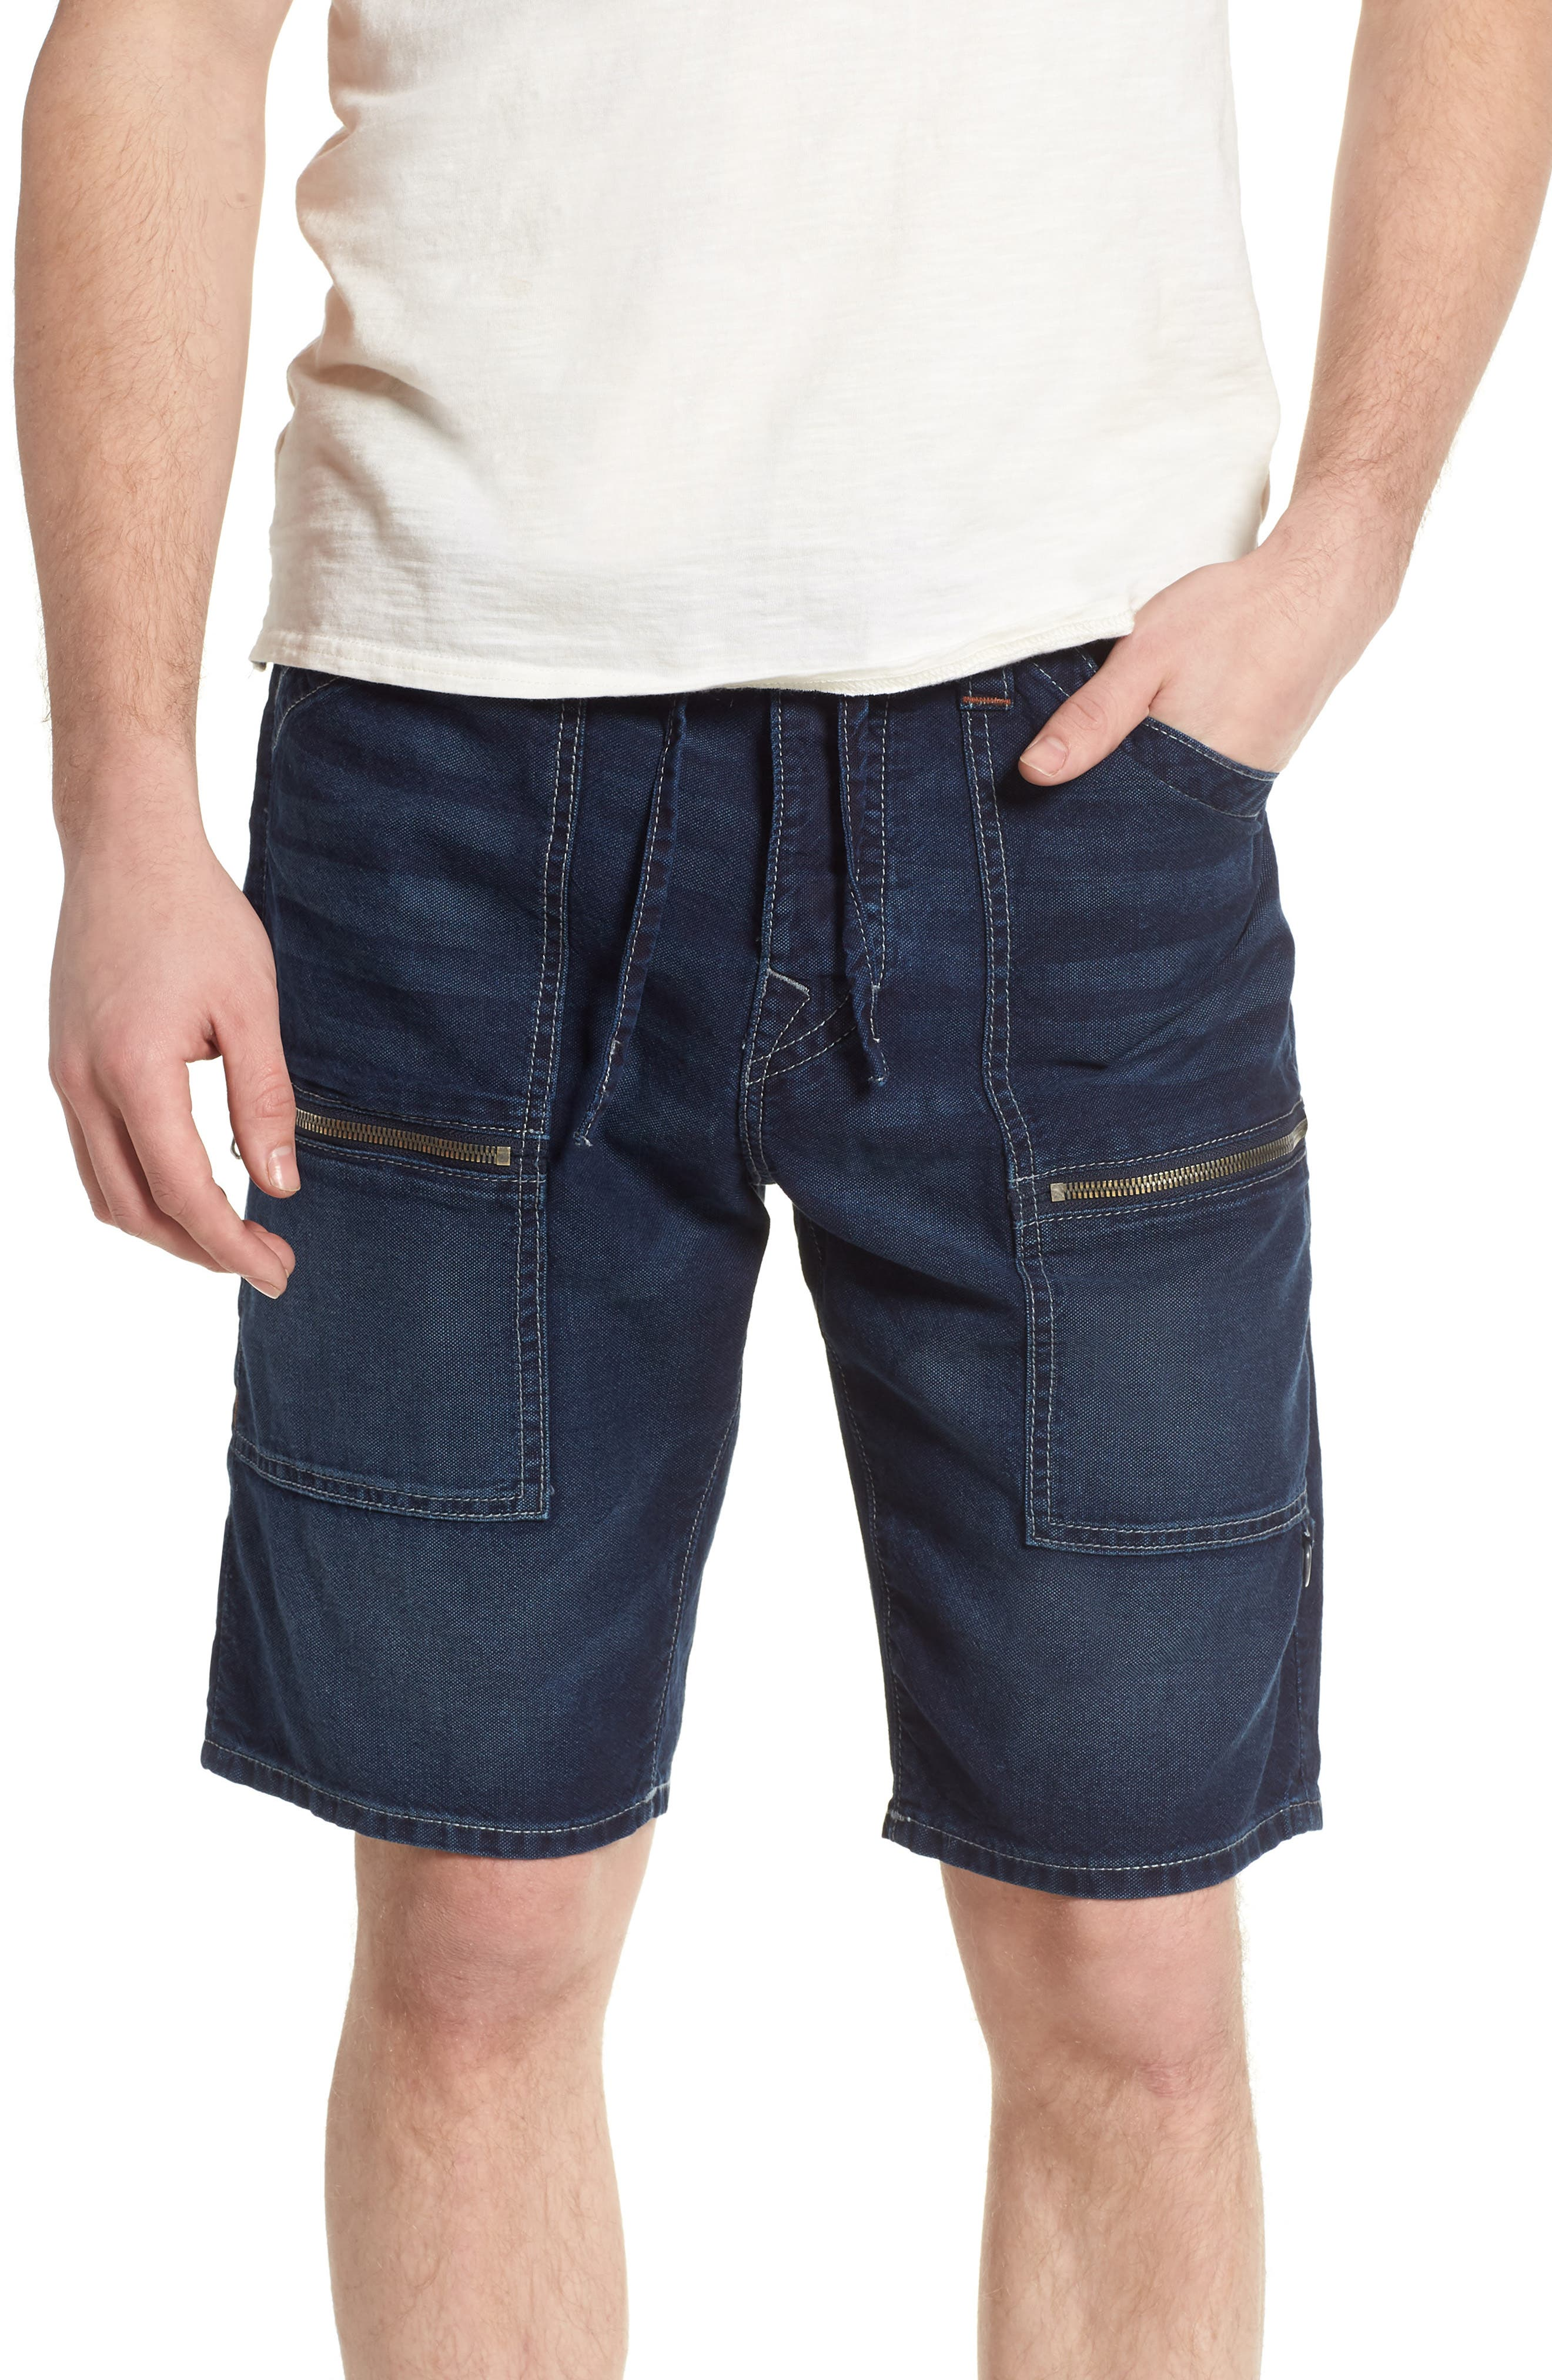 Trail Utility Shorts,                         Main,                         color, UNION SPECIAL